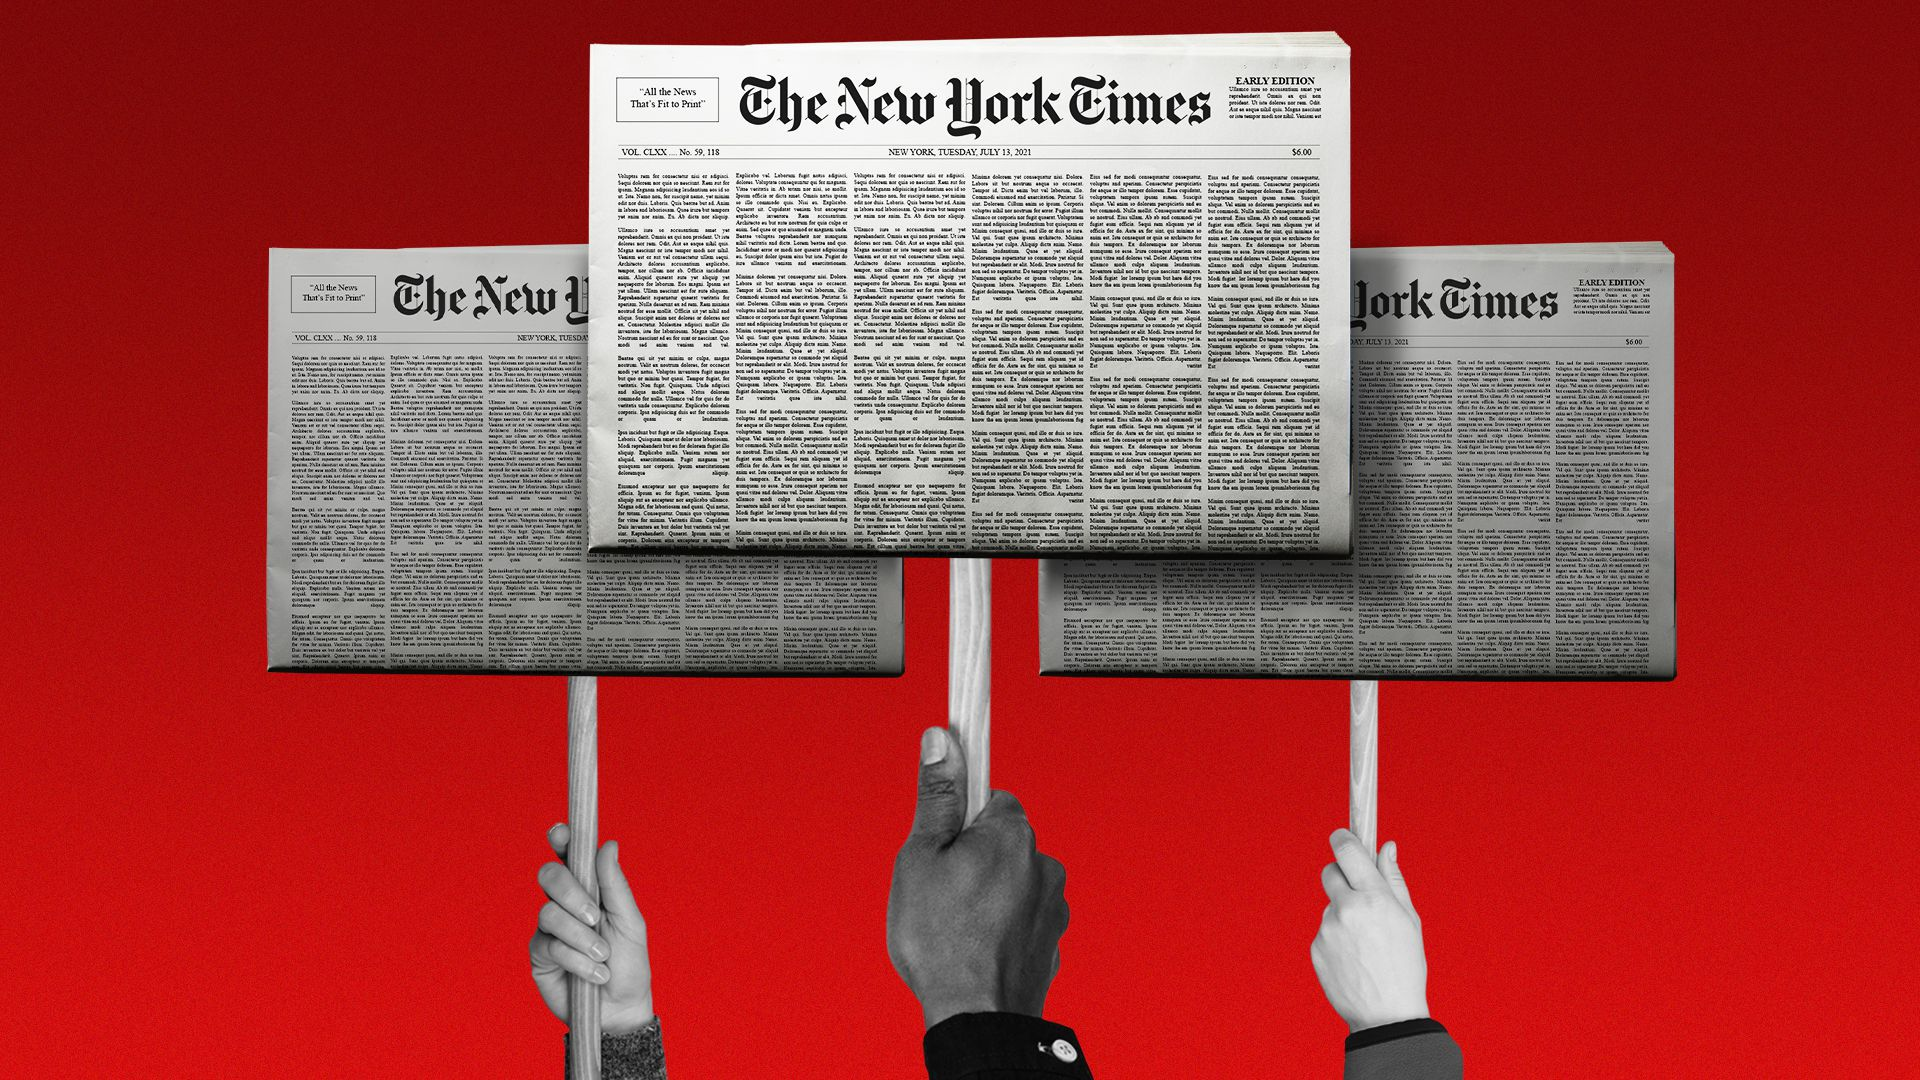 Three hands hold up picket signs that have the New York Times front page on them.